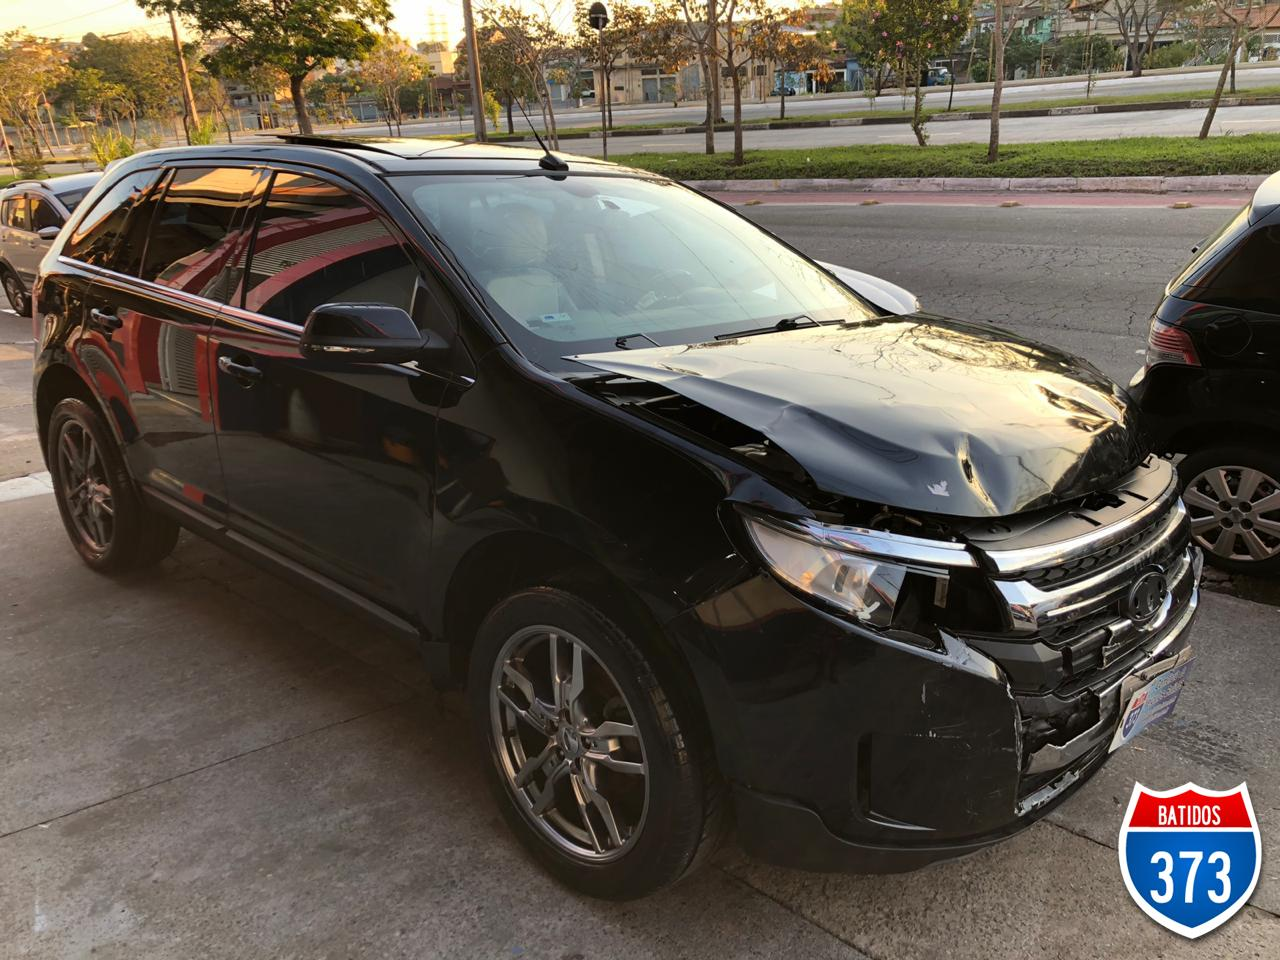 Ford EDGE LIMITED AWD V6 2014 Batido, Foto 16829